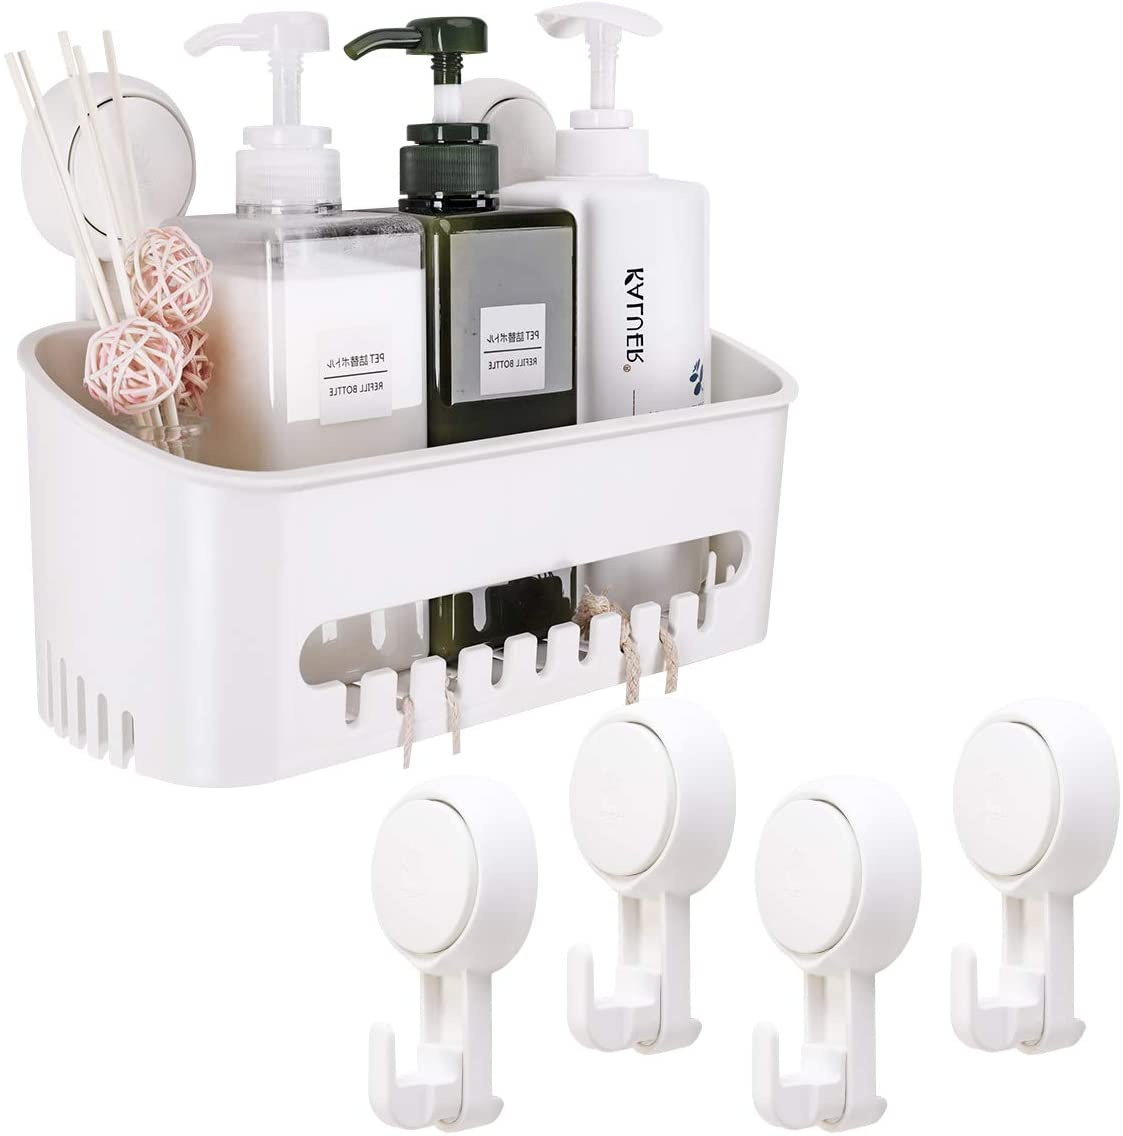 Drill-Free Vacuum Suction Cup Shower Caddy